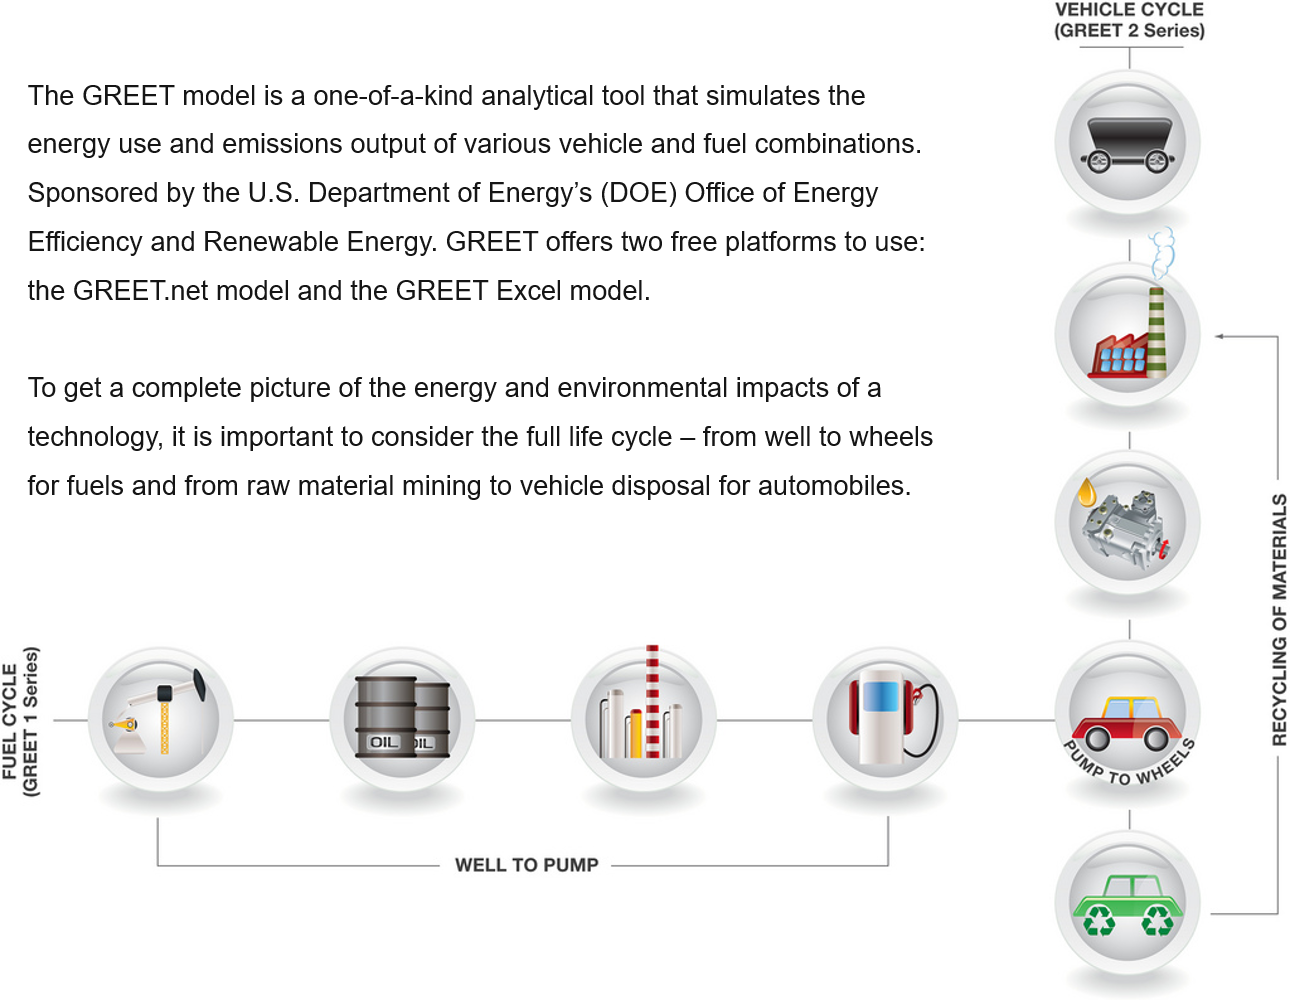 Argonne Greet Model Utilize Following Formulae To Calculate The Power Consumption Of Greenhouse Gases Regulated Emissions And Energy Use